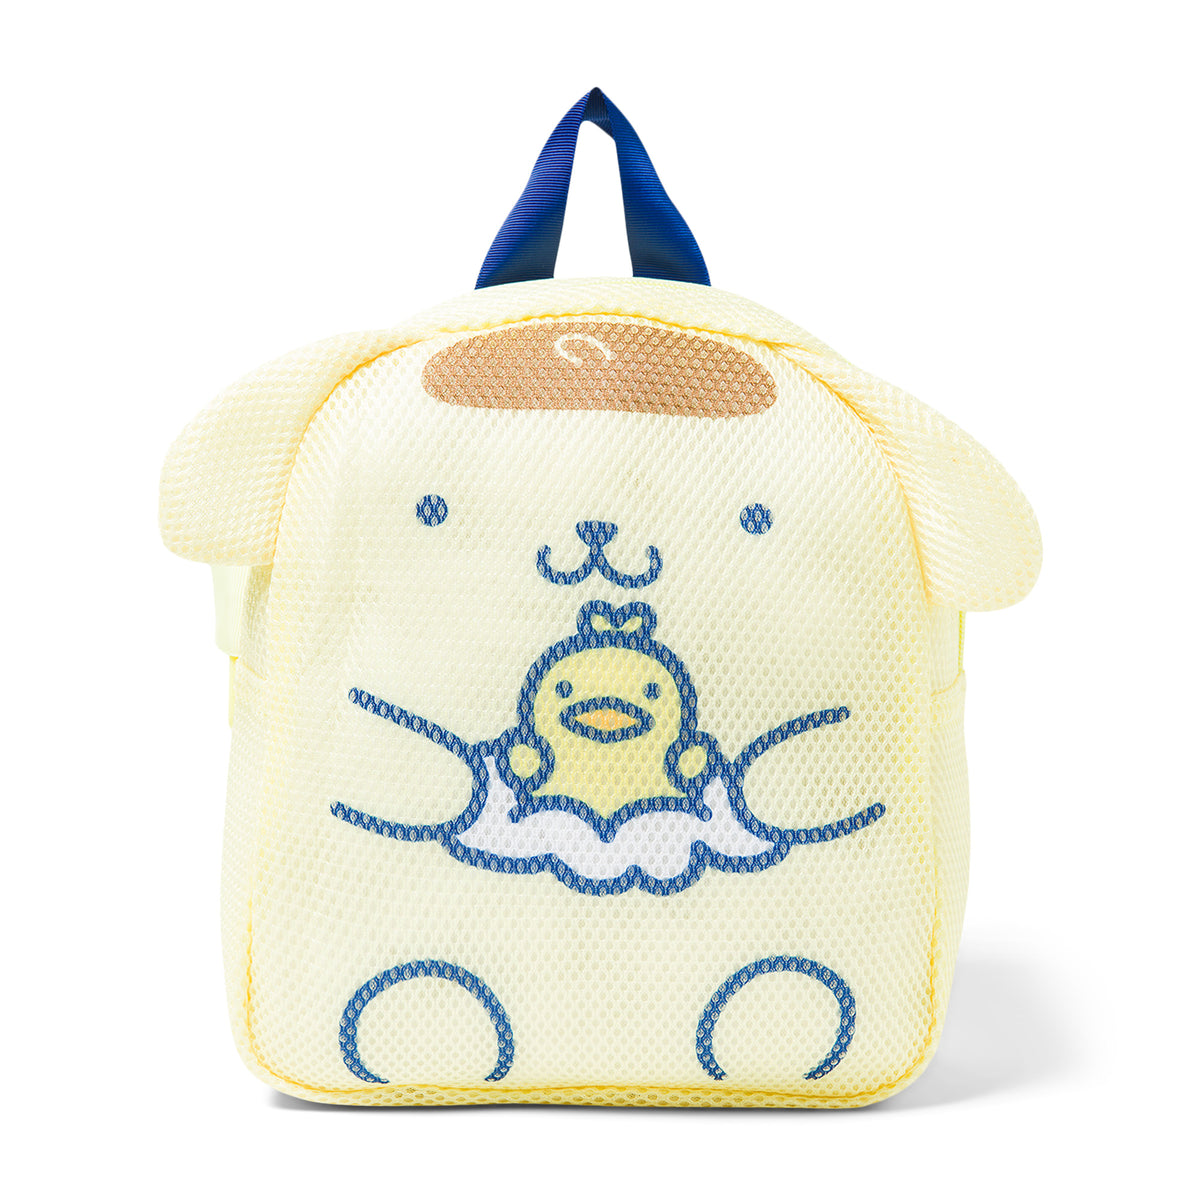 Pompompurin Bathtime Collection Laundry Bag